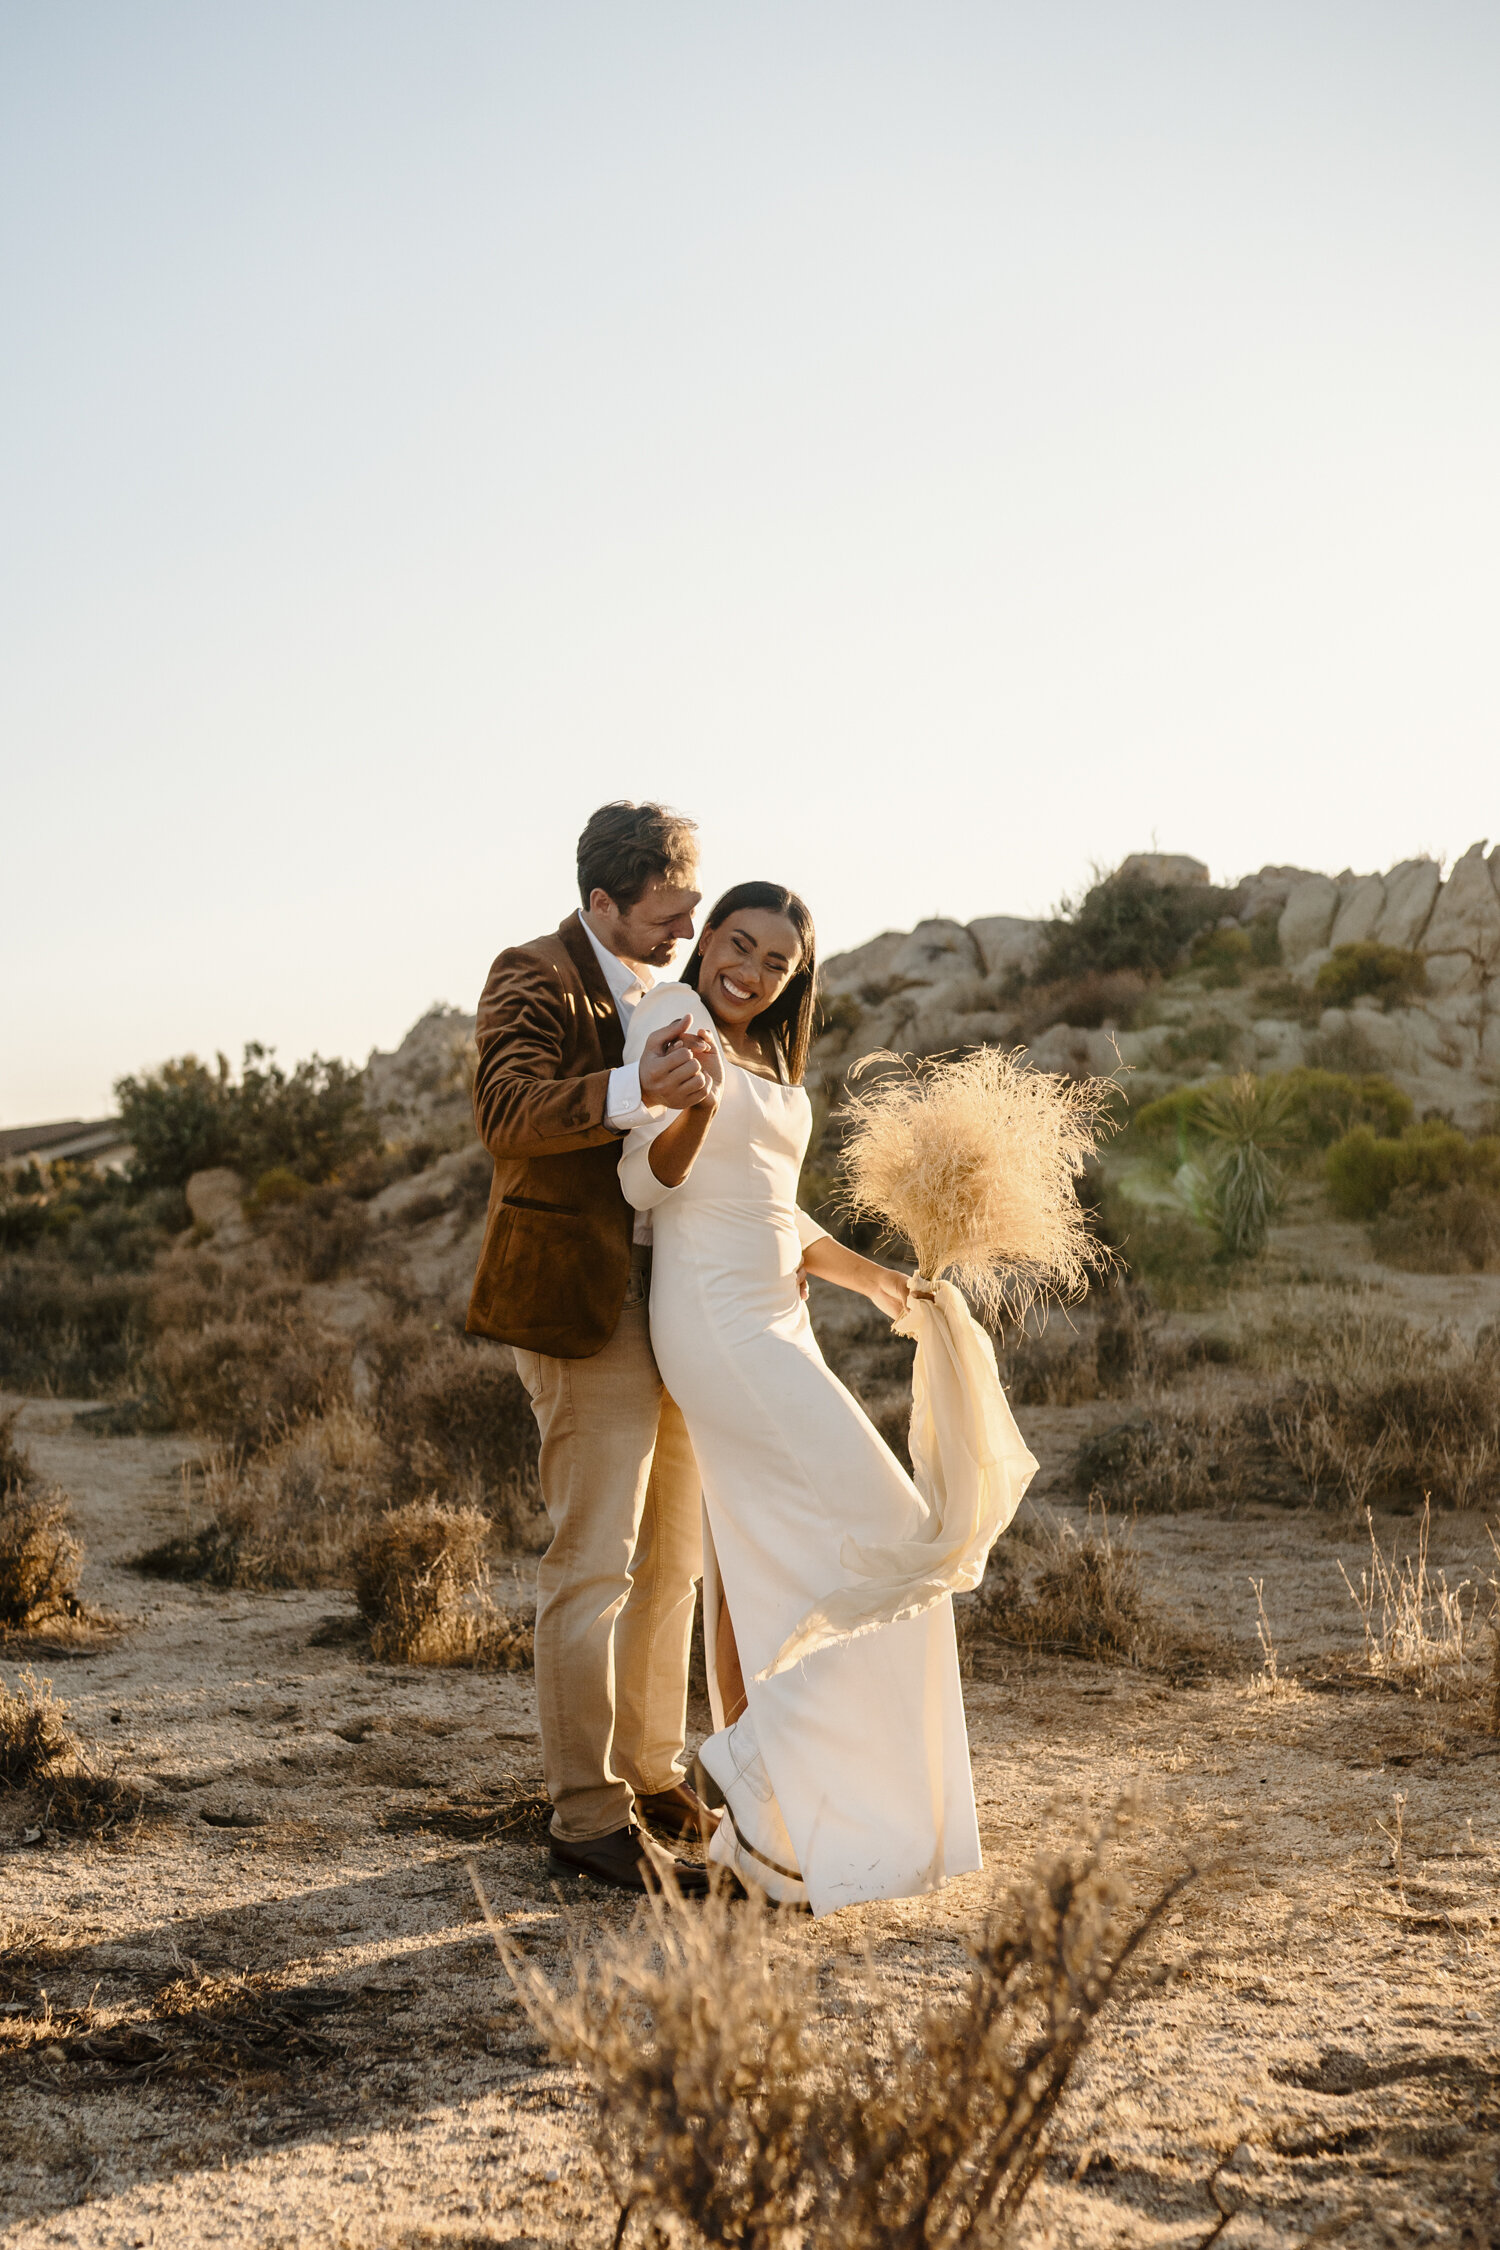 Fun bride and groom portraits at their romantic Joshua Tree Elopement | by Kayli LaFon Photography